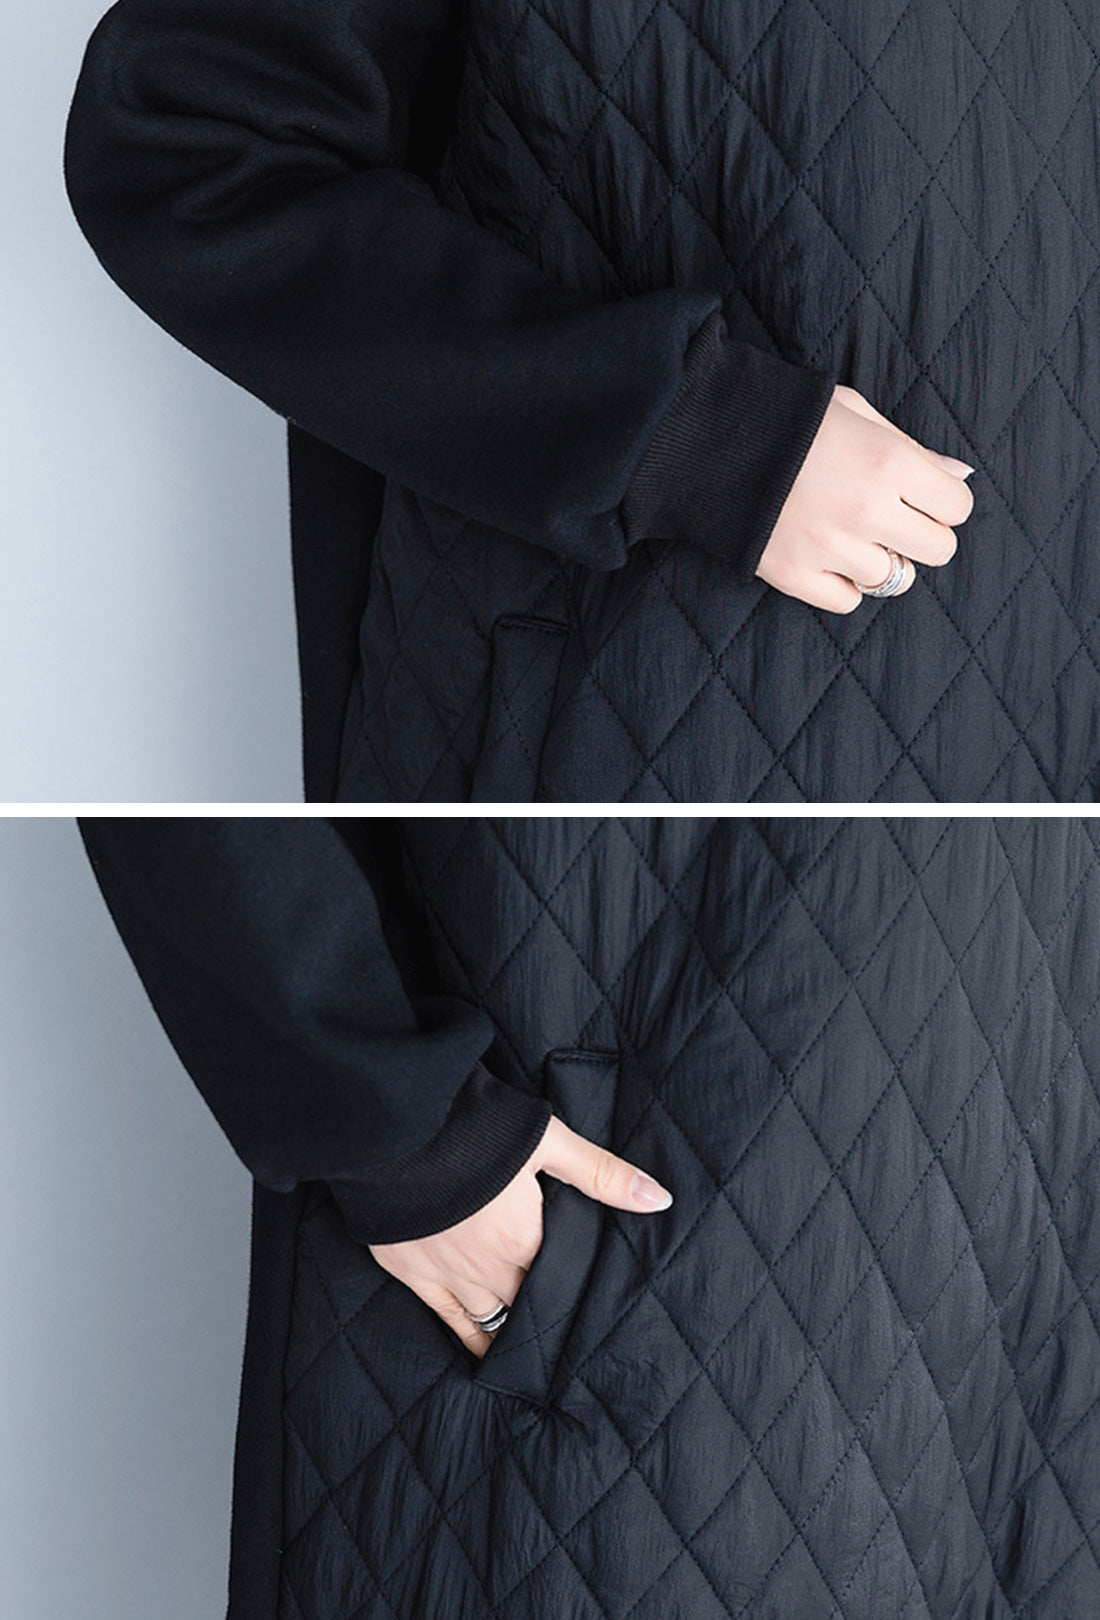 Slide Away Black Sweatshirt Hooded Dress Details 2